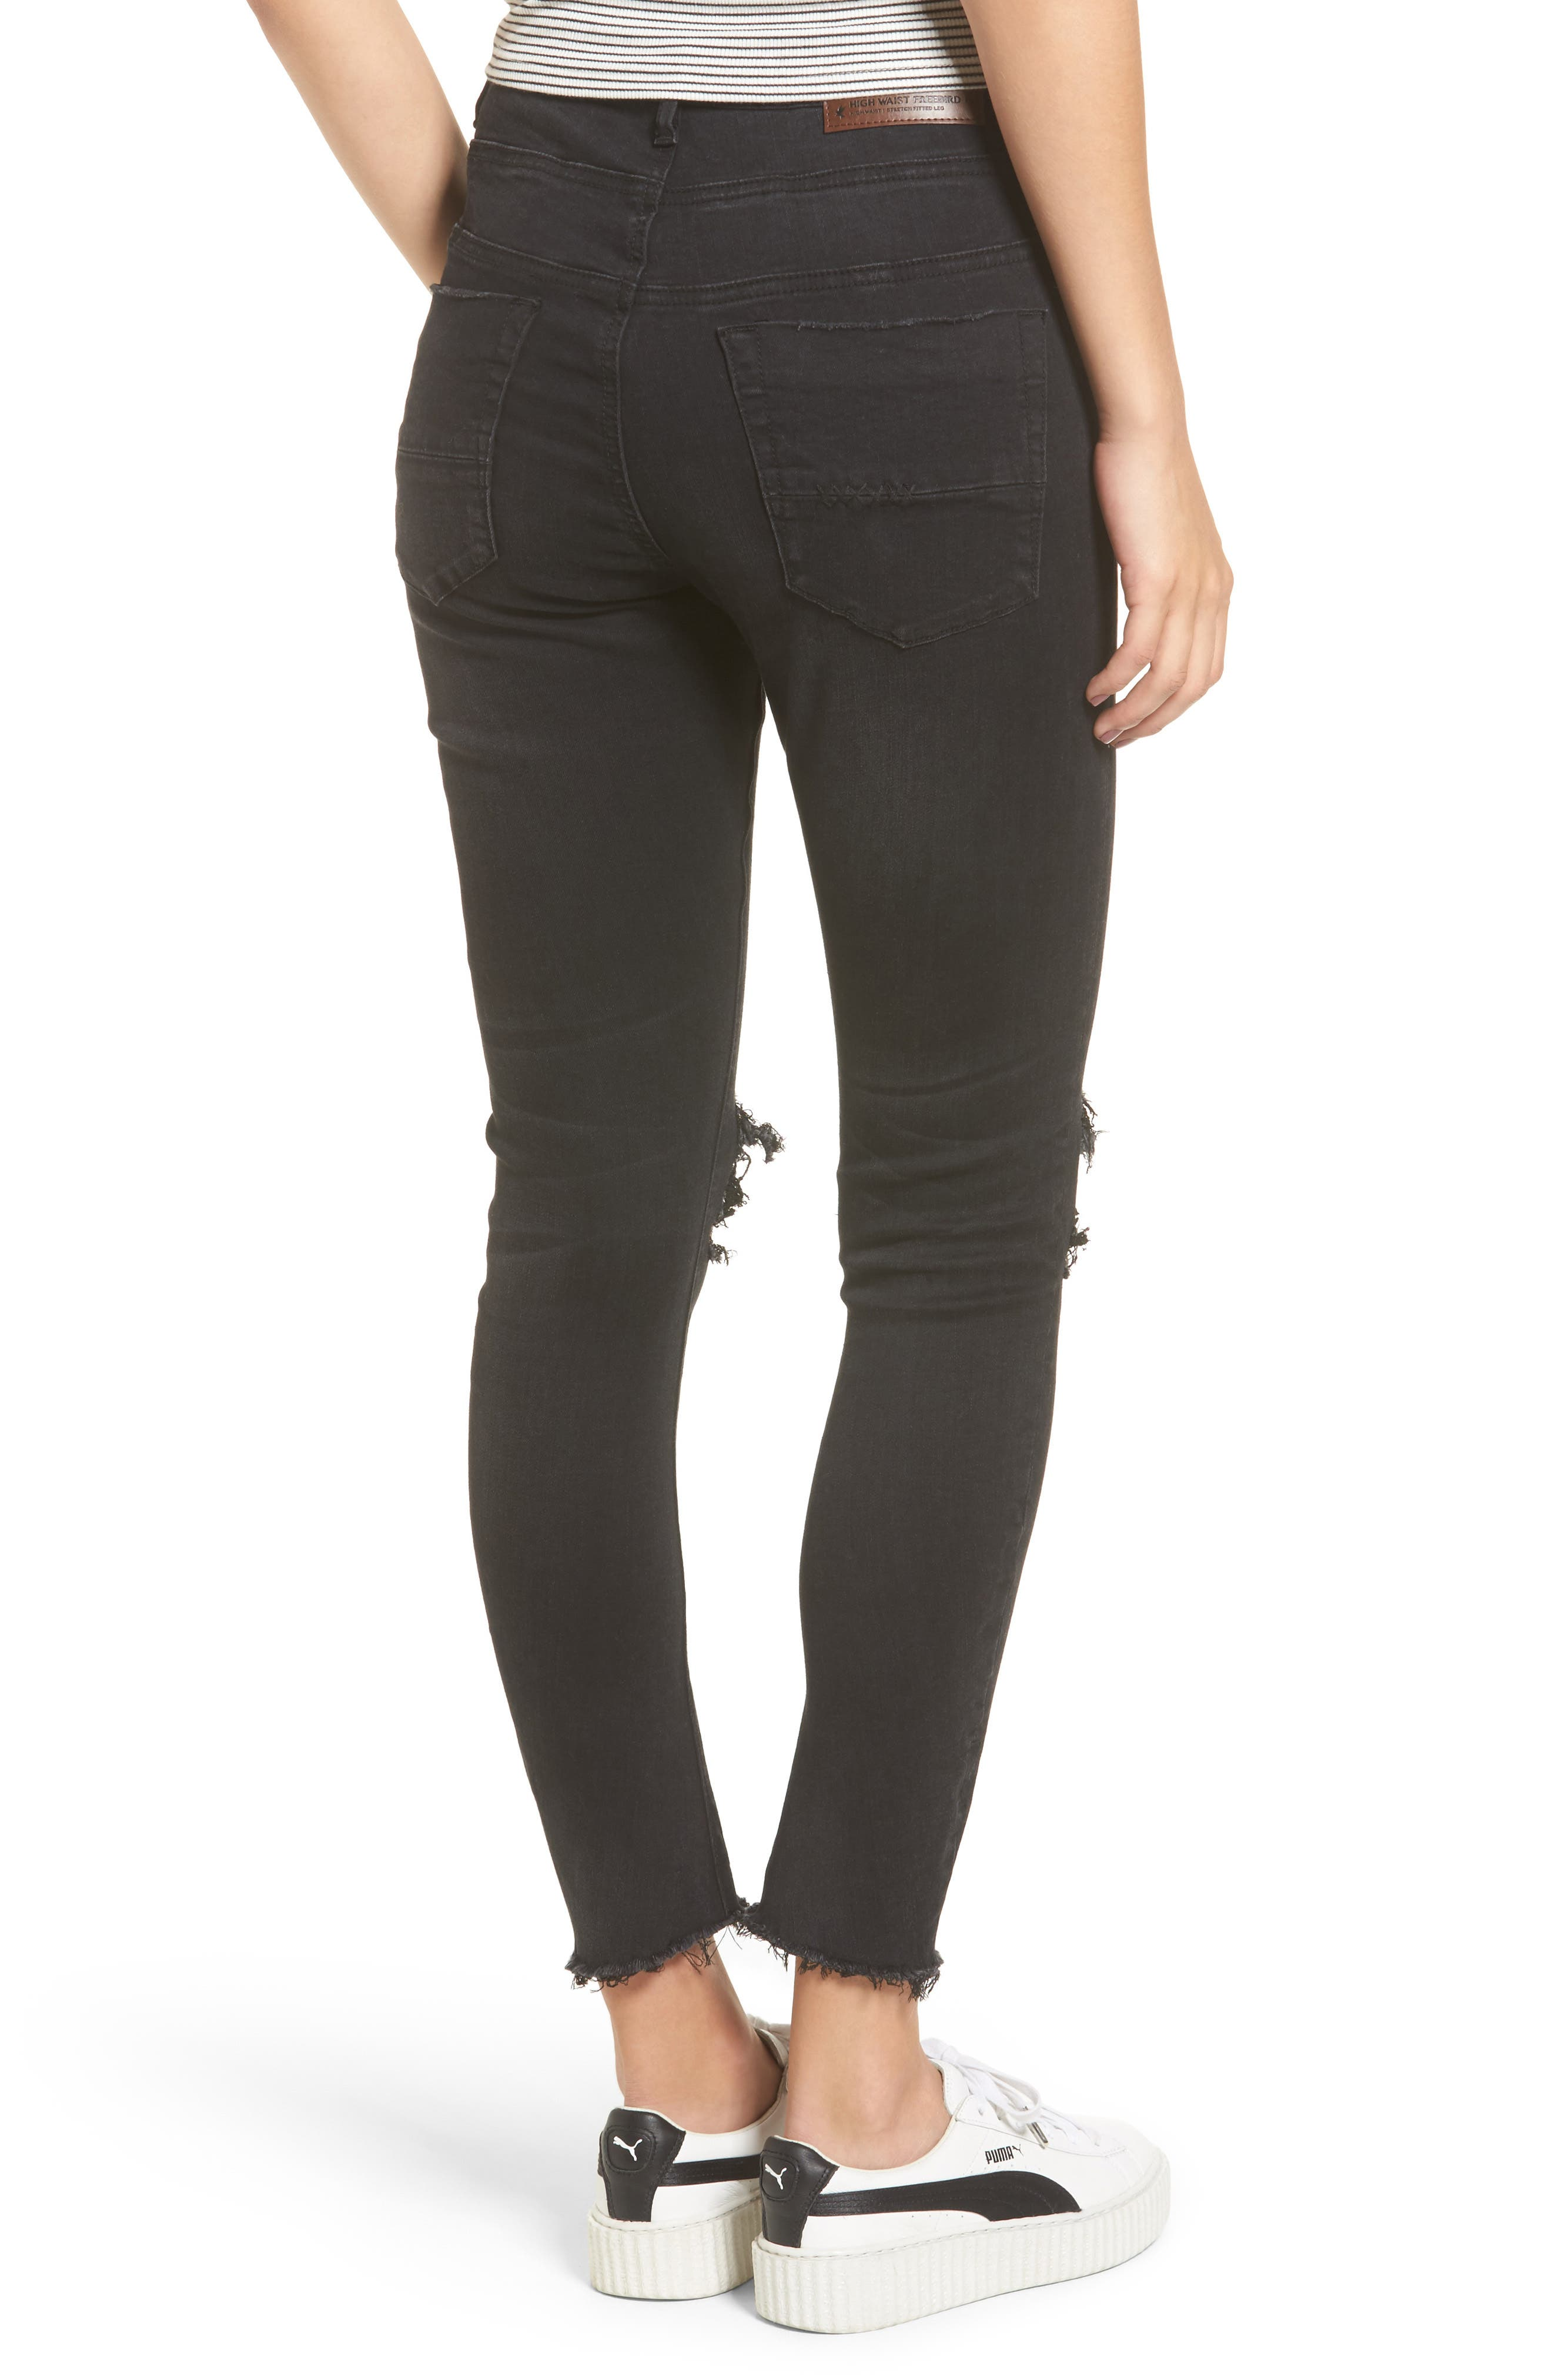 Freebirds Ripped High Waist Skinny Jeans,                             Alternate thumbnail 2, color,                             001